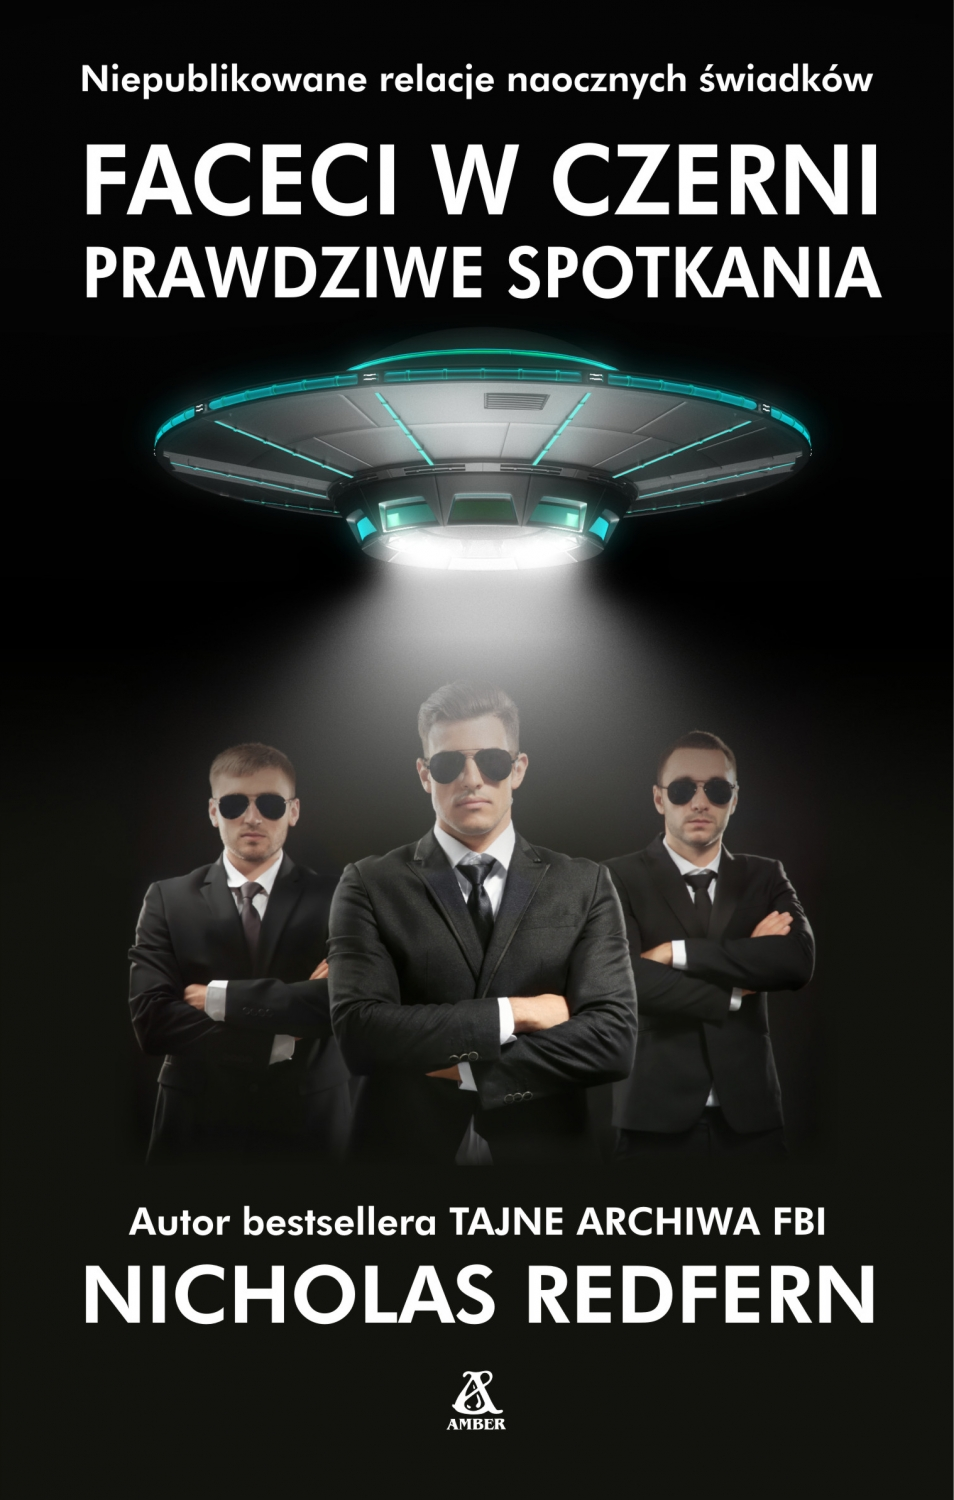 Men in Black, Polish Edition, 2018: